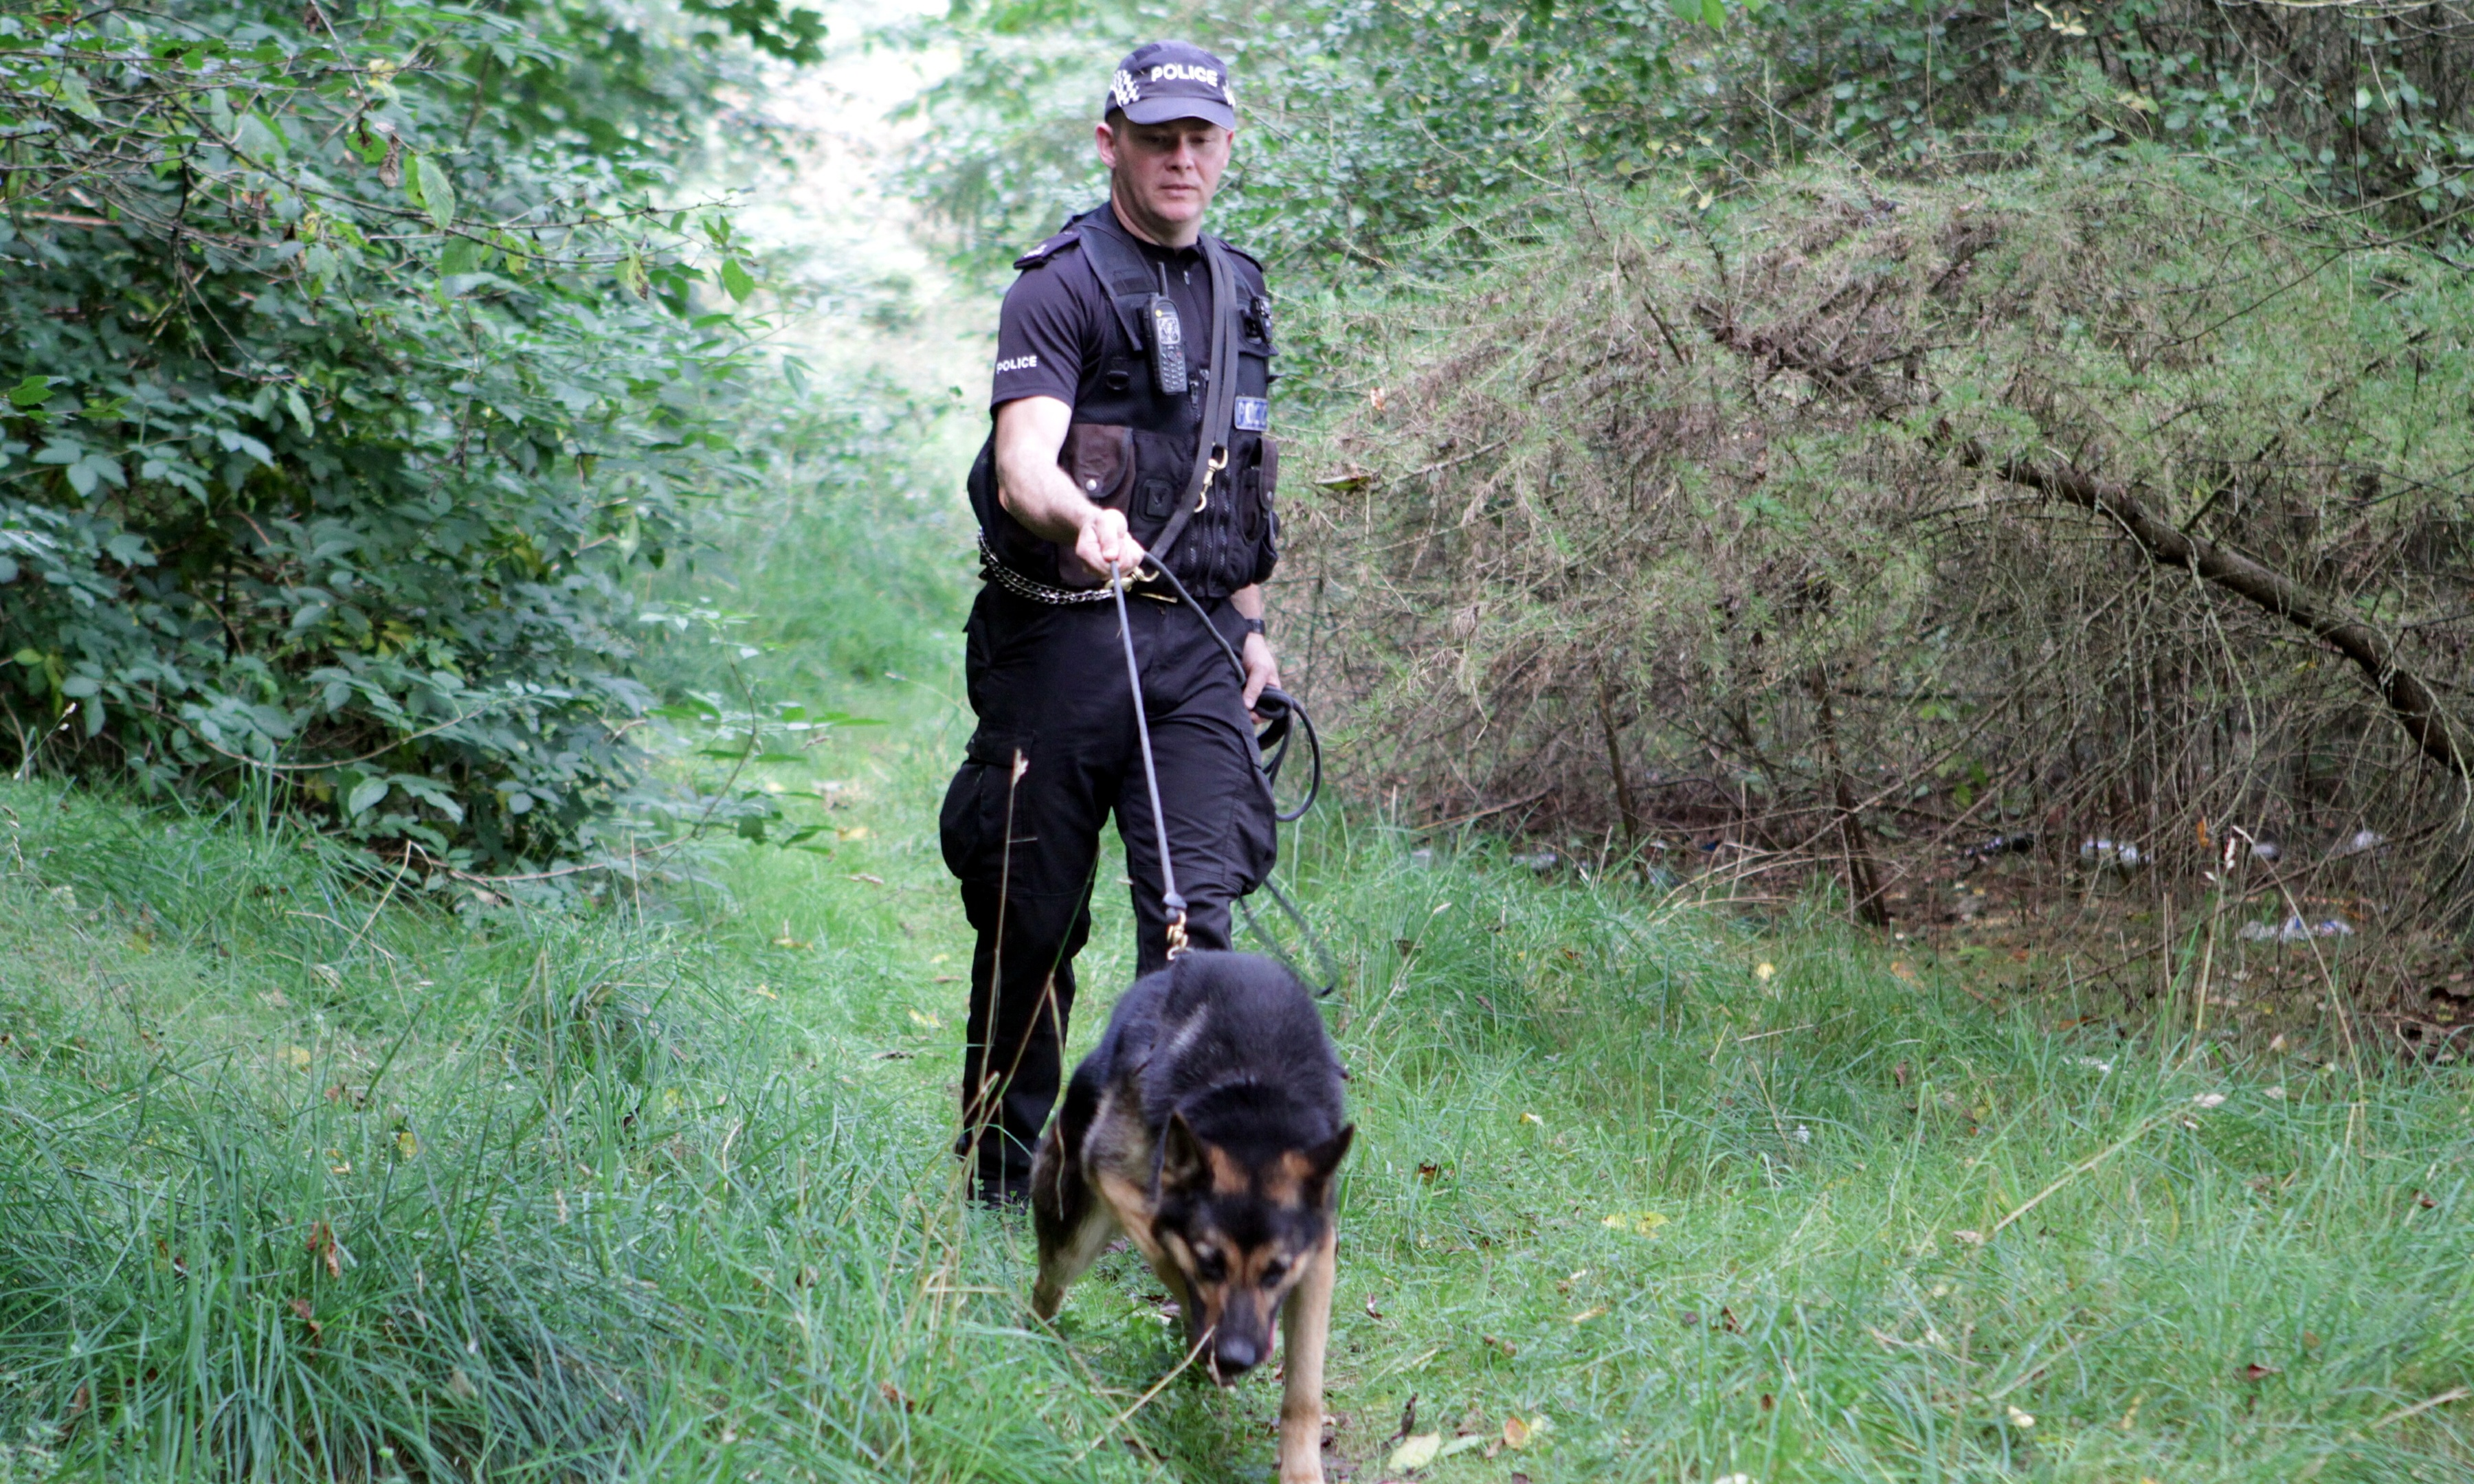 PC Galloway and Nipper on a training exercise